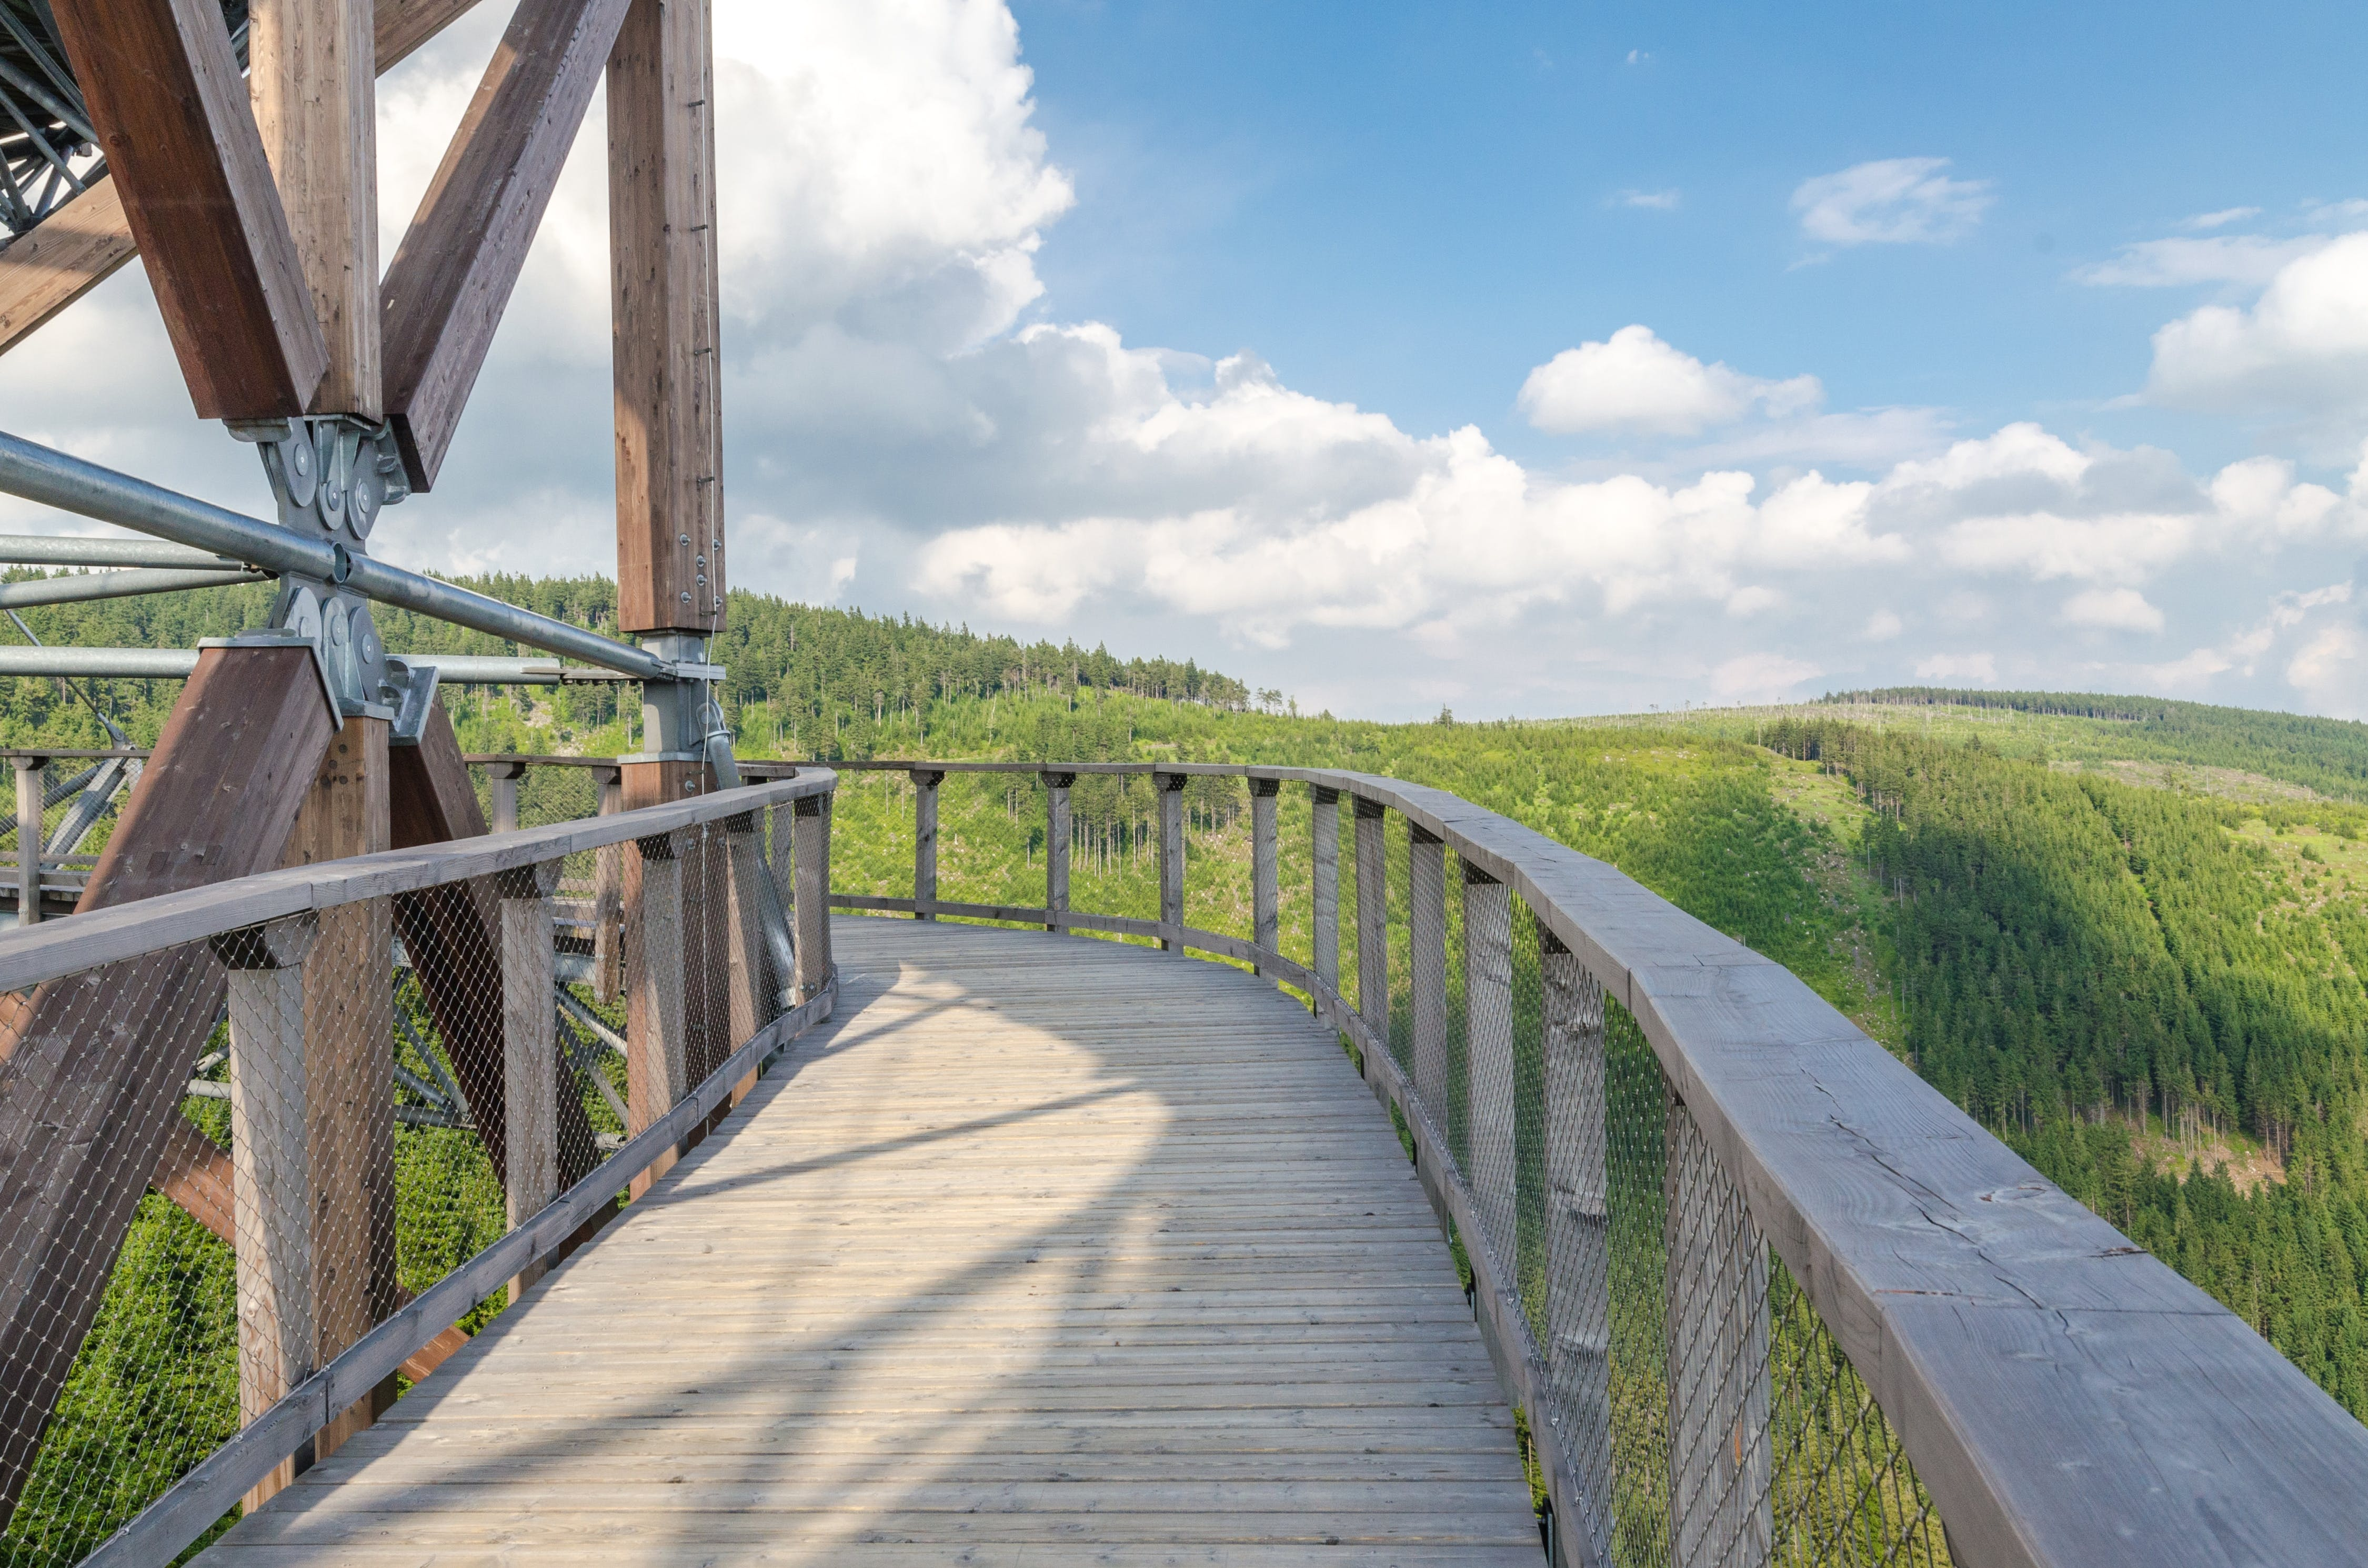 Brown Wooden Bridge Under Blue Sky